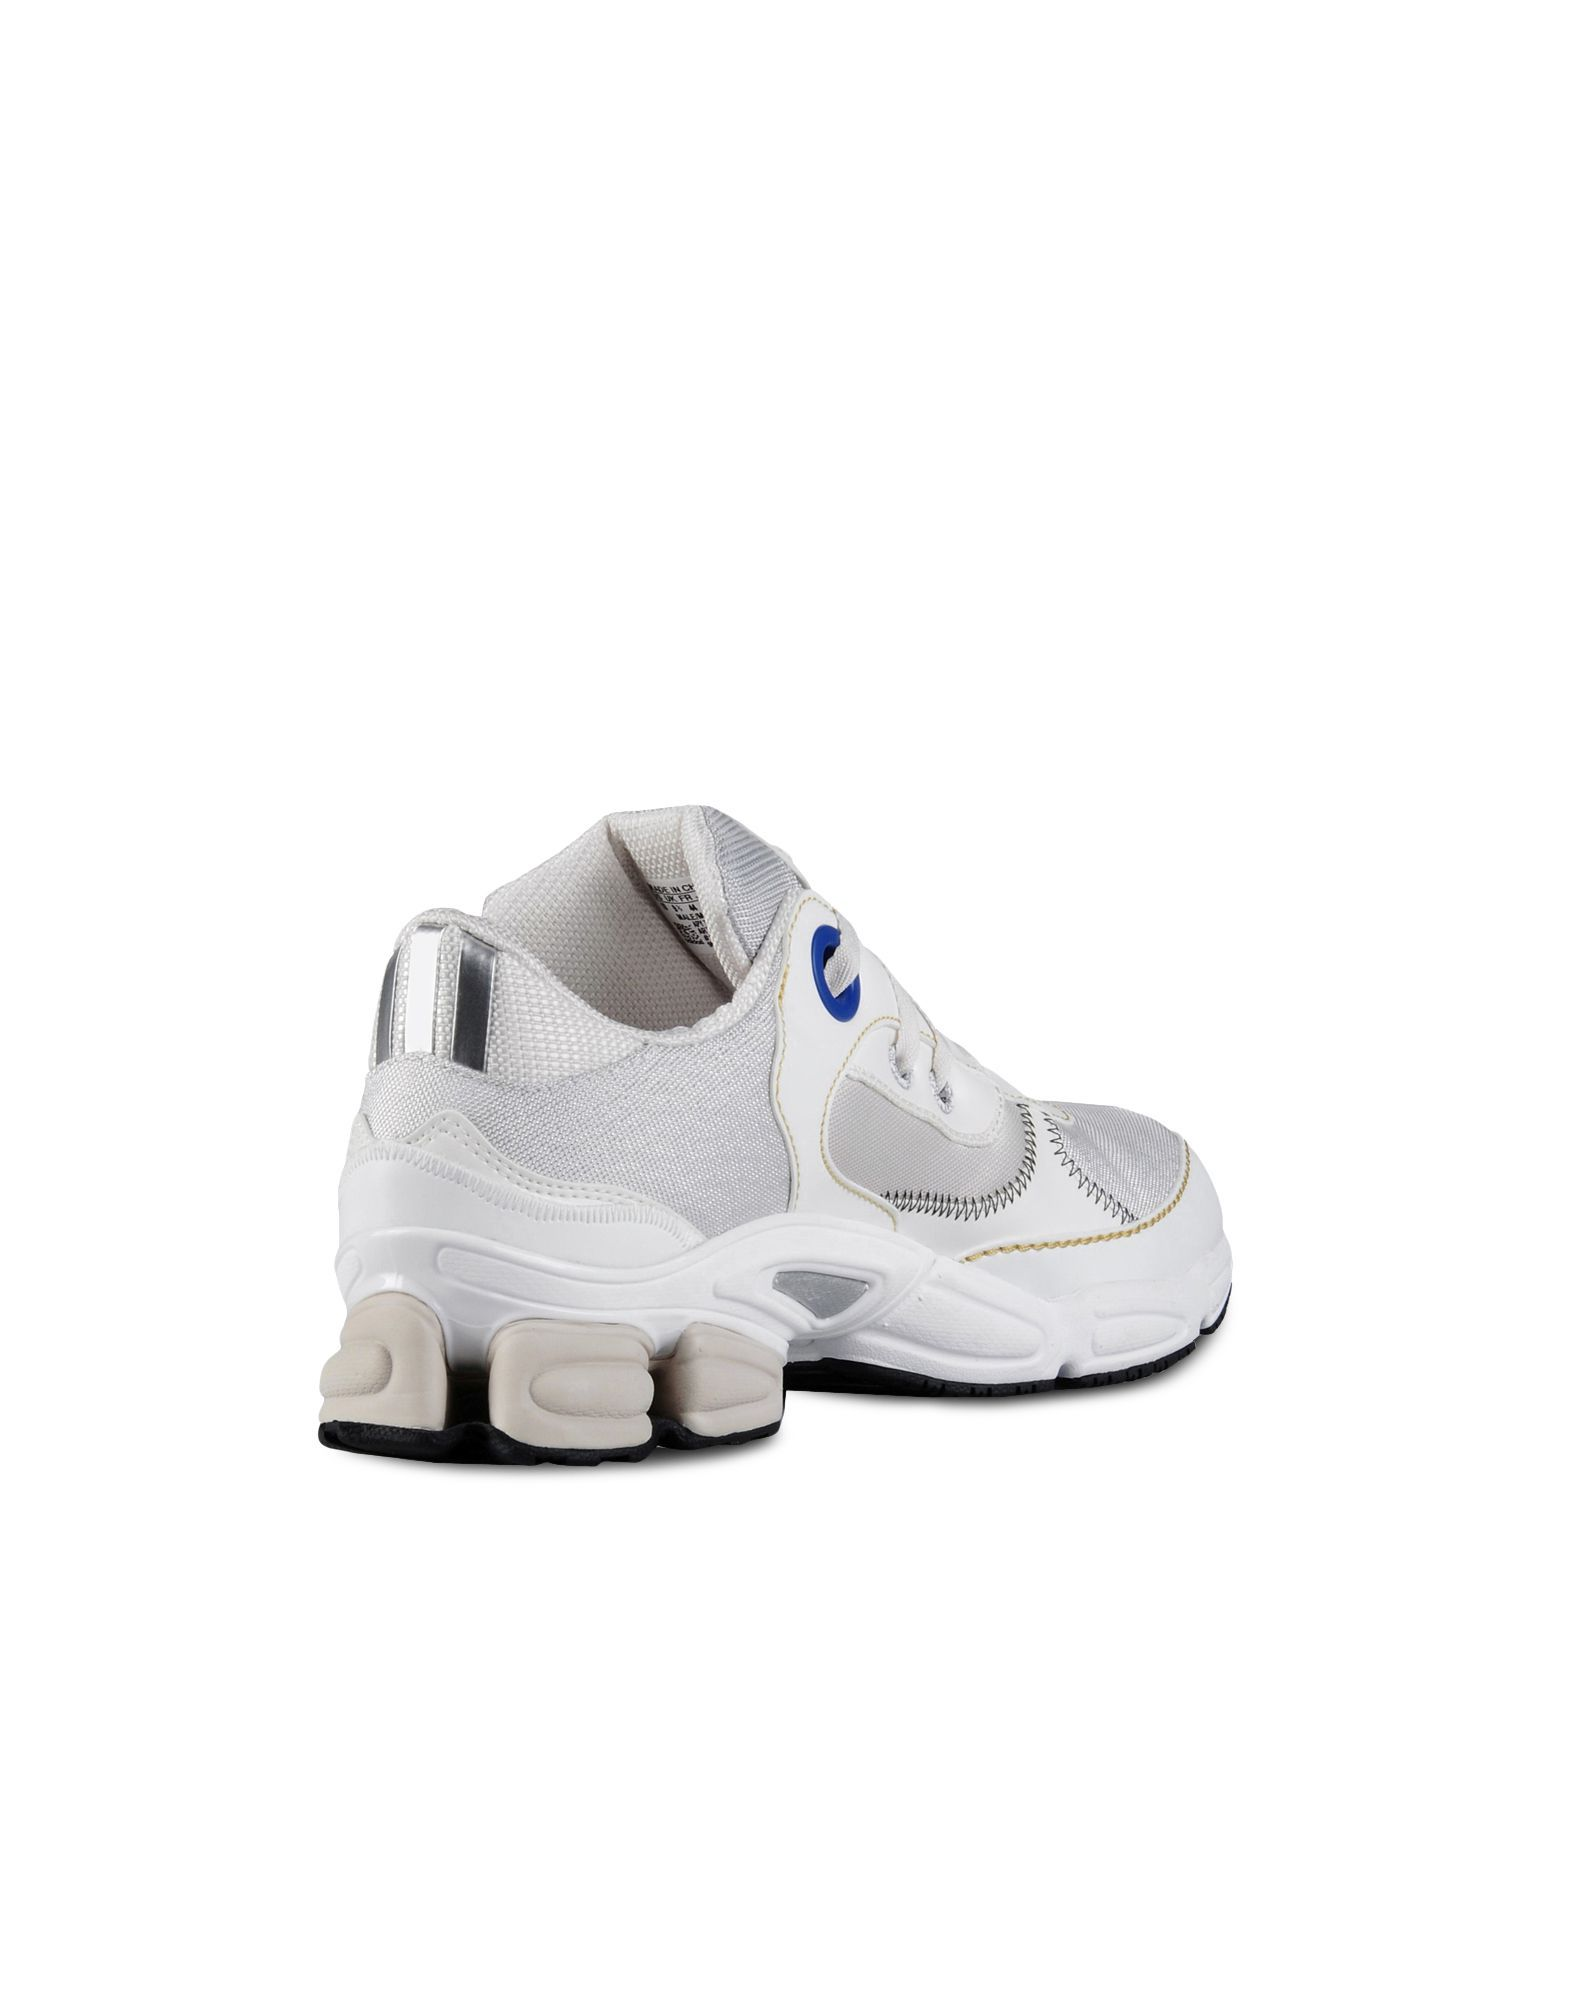 Design Mens Adidas 'ozweego Robot' Sneakers Store